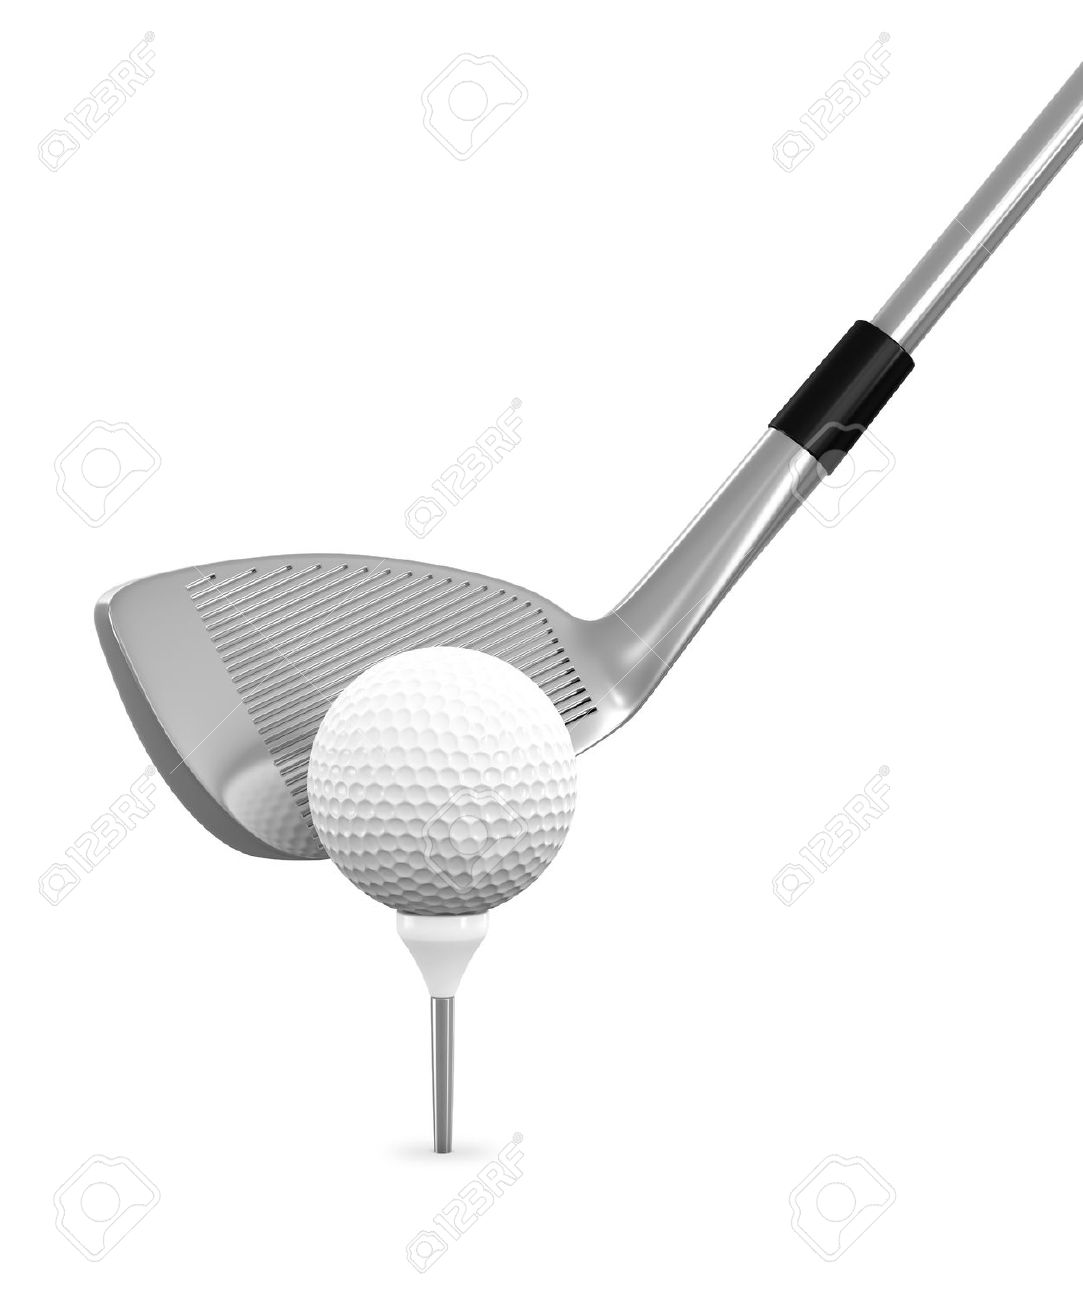 golf club stock photos u0026 pictures royalty free golf club images